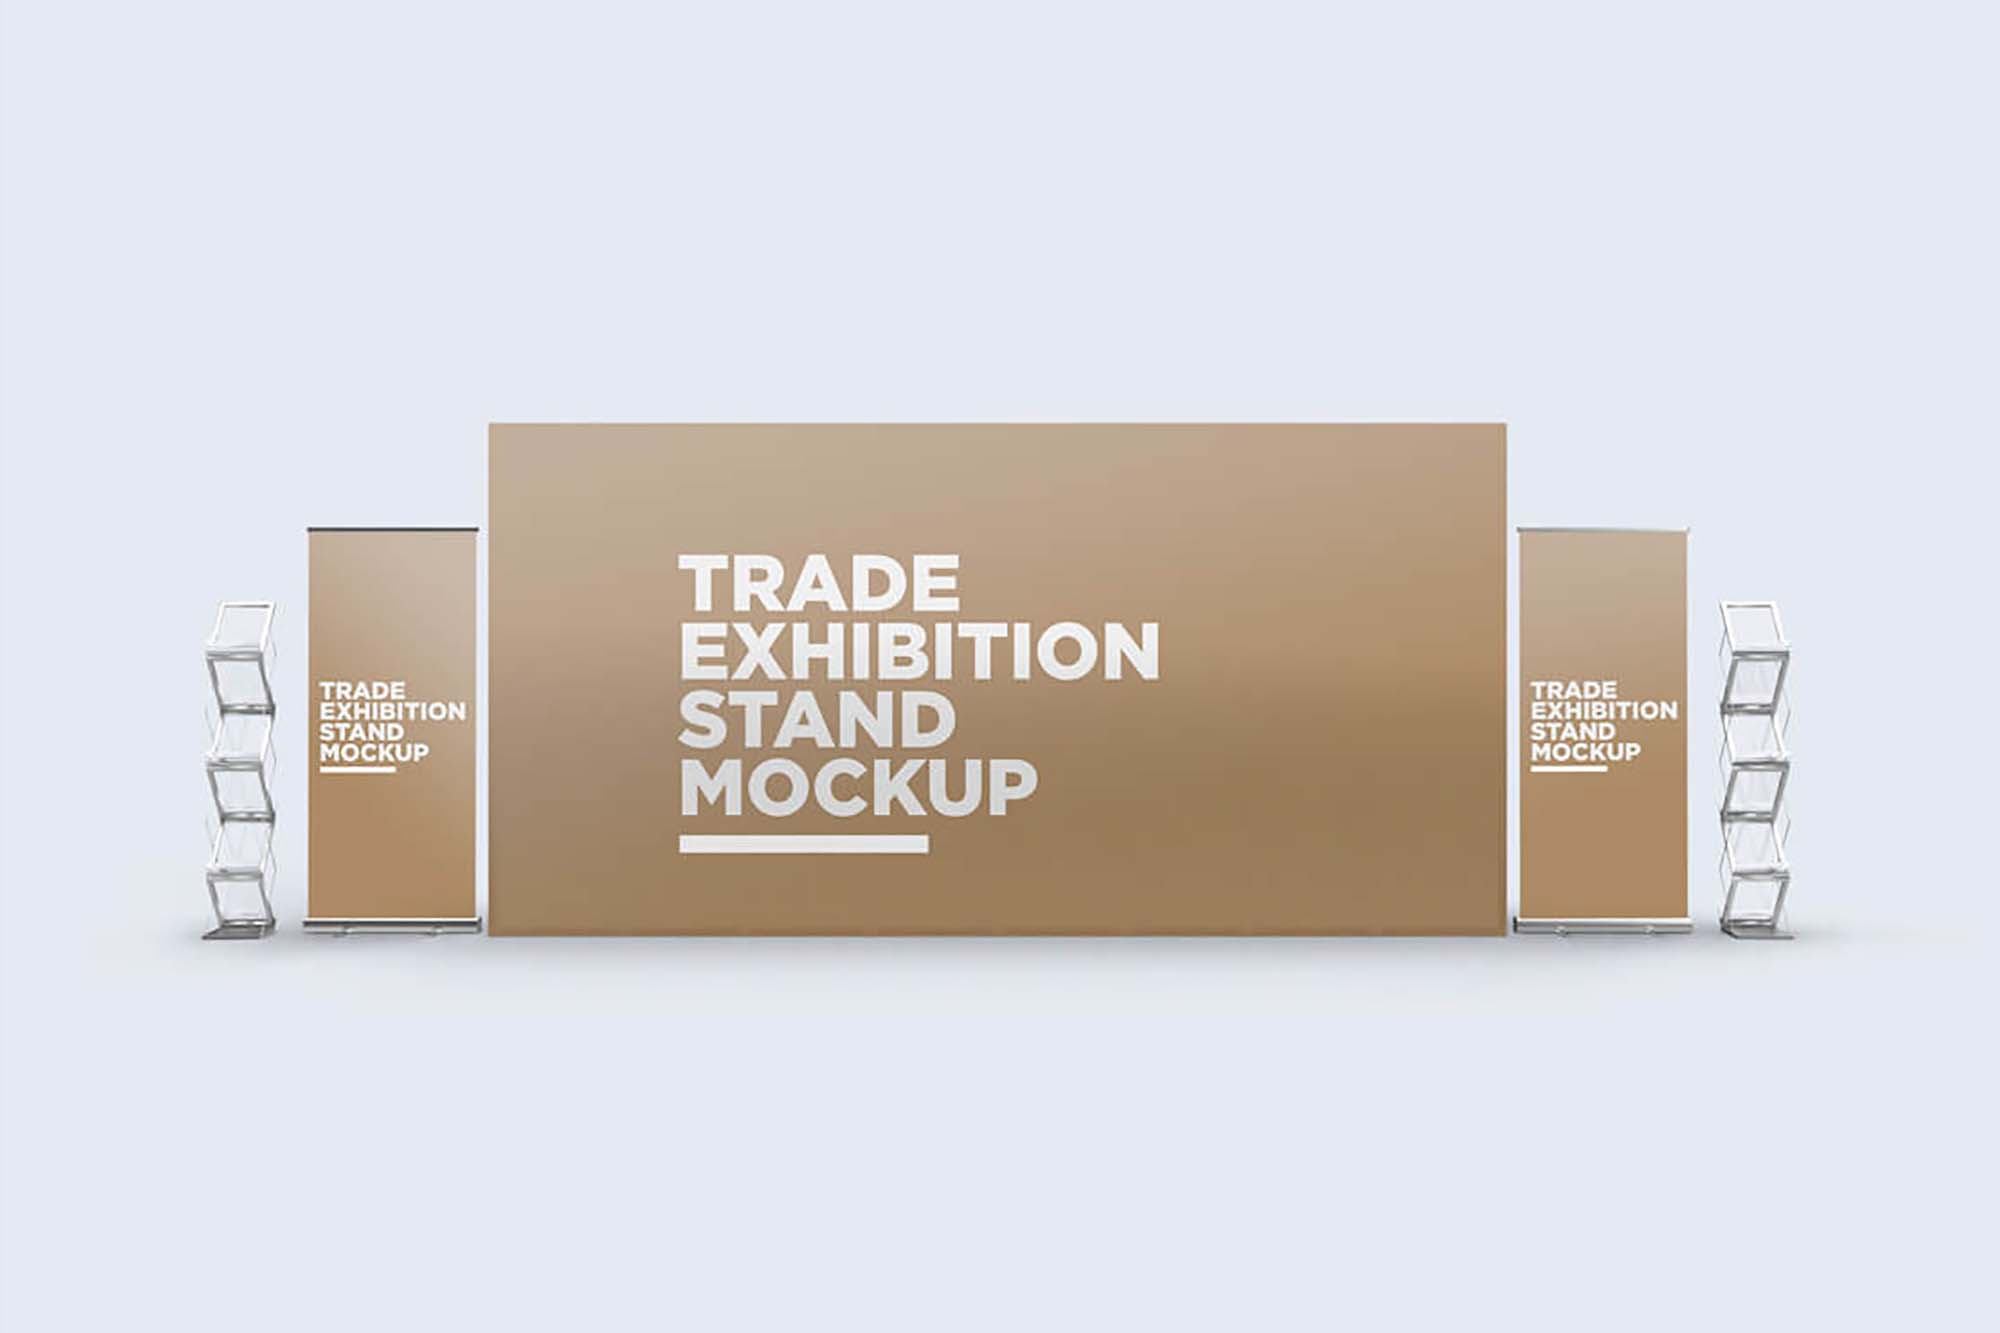 Trade Exhibition Stand Mockup